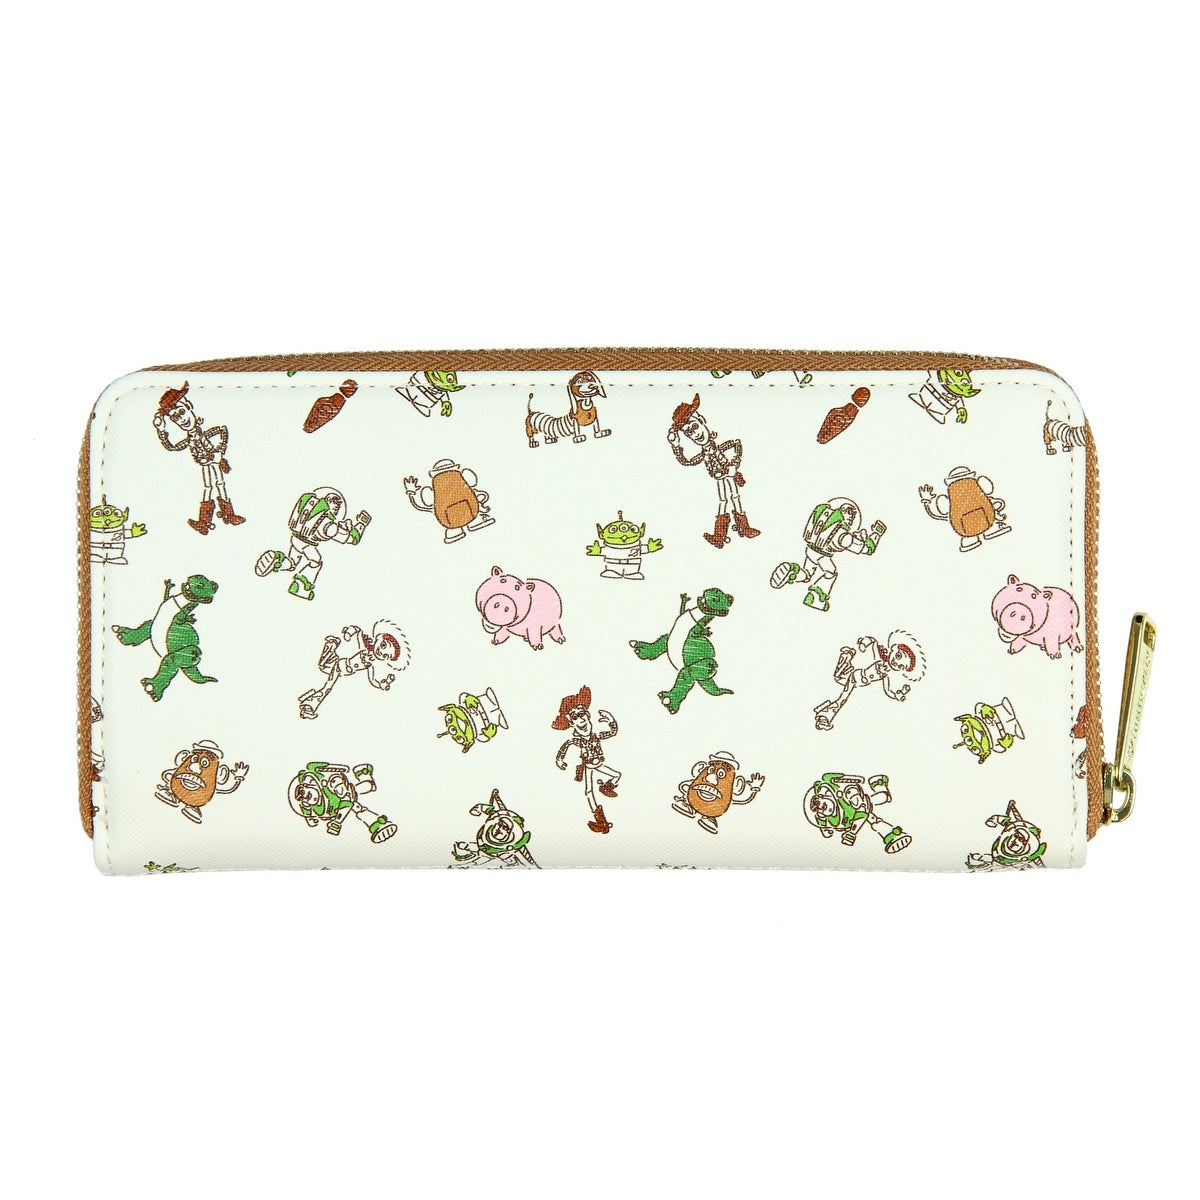 060b989232 Shop Loungefly x Disney Pixar Toy Story Allover Character Print Zip Around  Wallet - One Size Fits most - Free Shipping On Orders Over $45 - Overstock  - ...